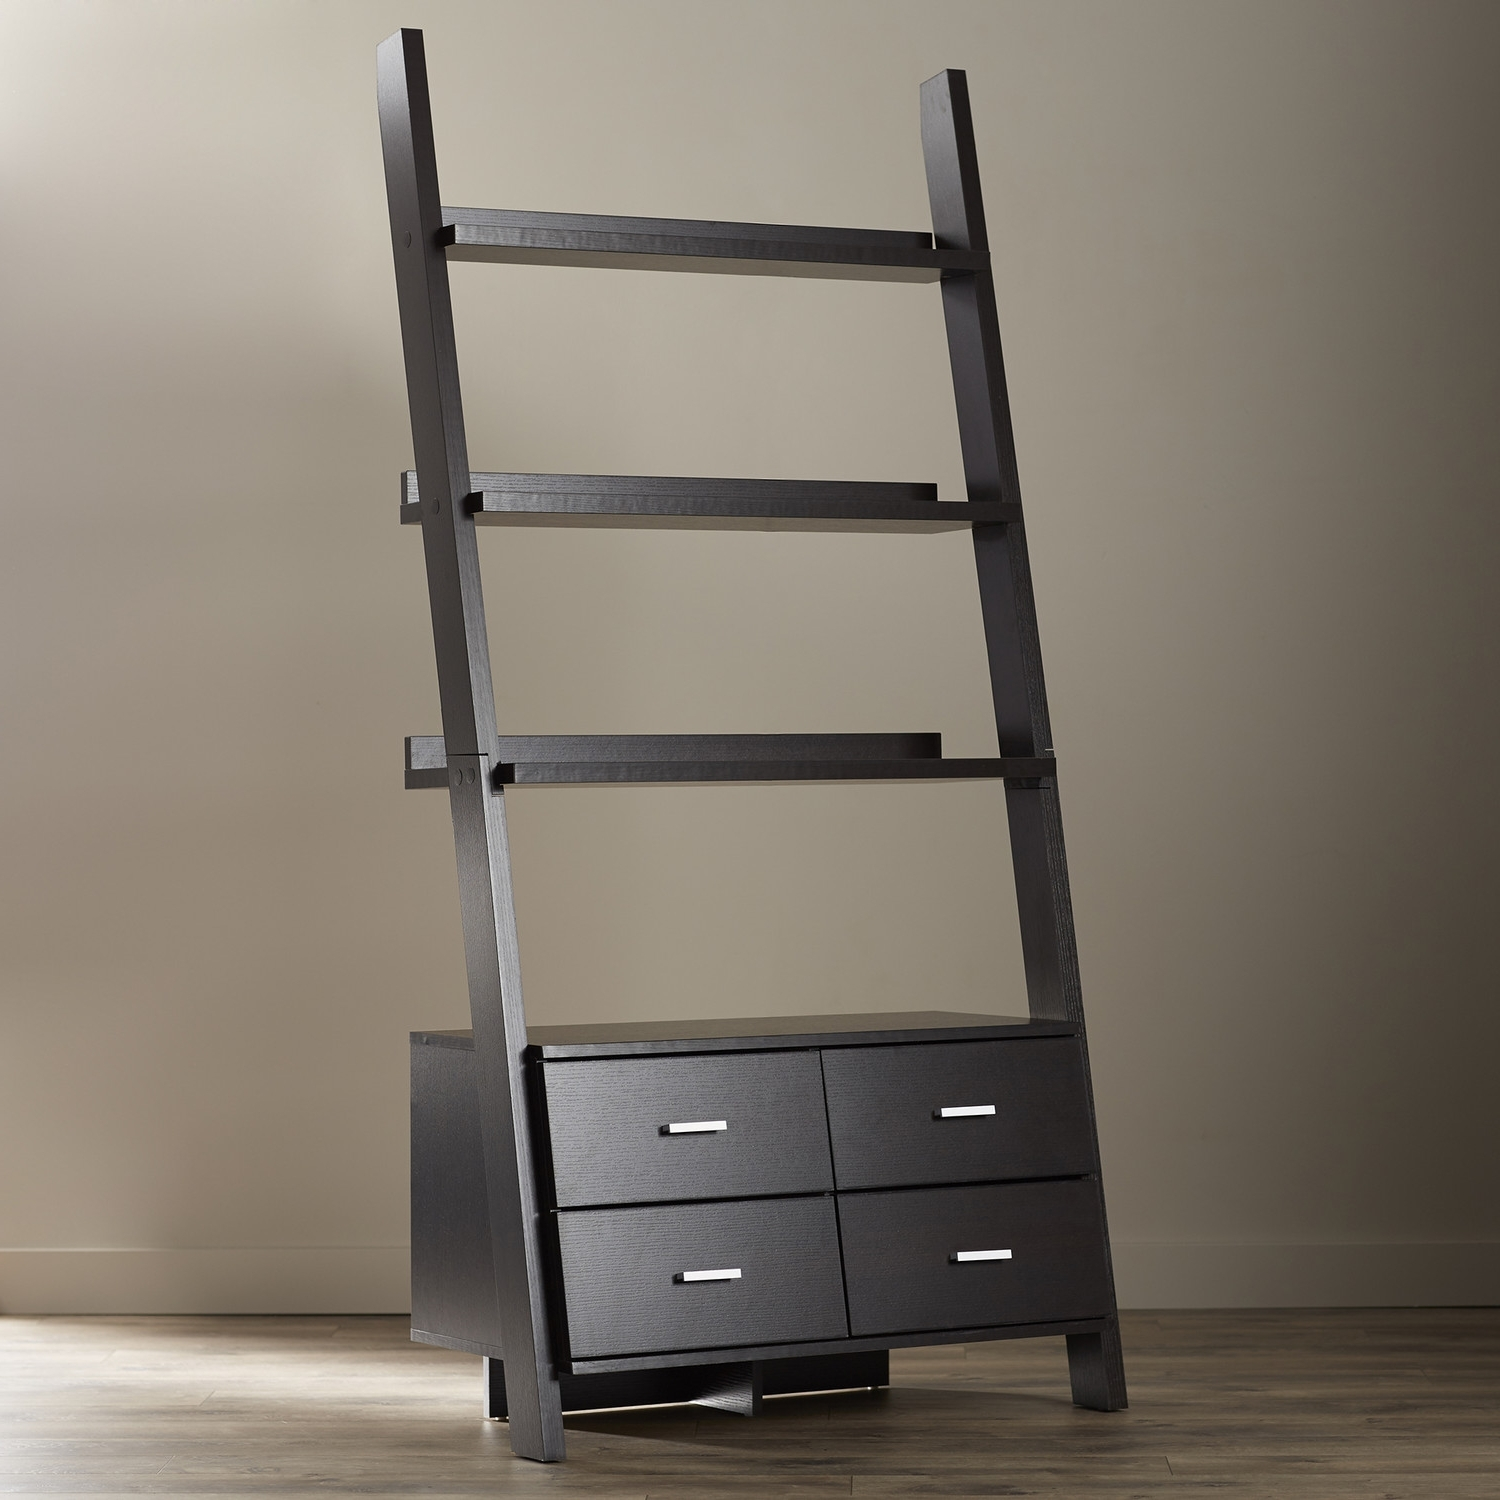 Favorite Breathtaking Black Bookcase Wood 4 Drawer Storage 3 Tier Shelf Throughout Ladder Bookcases With Drawers (View 3 of 15)